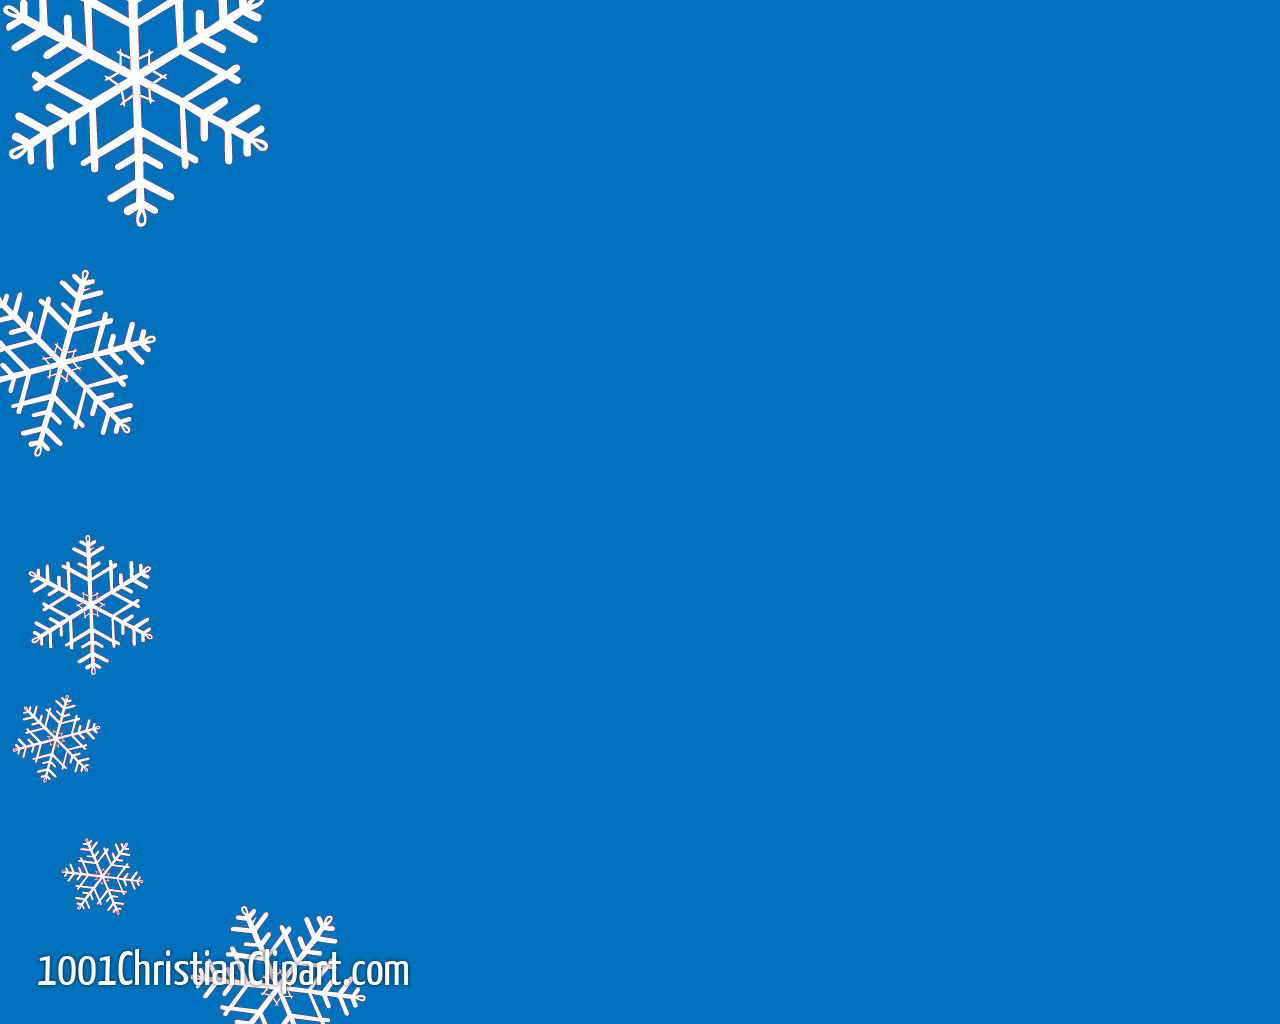 Free Christmas Powerpoint 1001 Christian Clipart